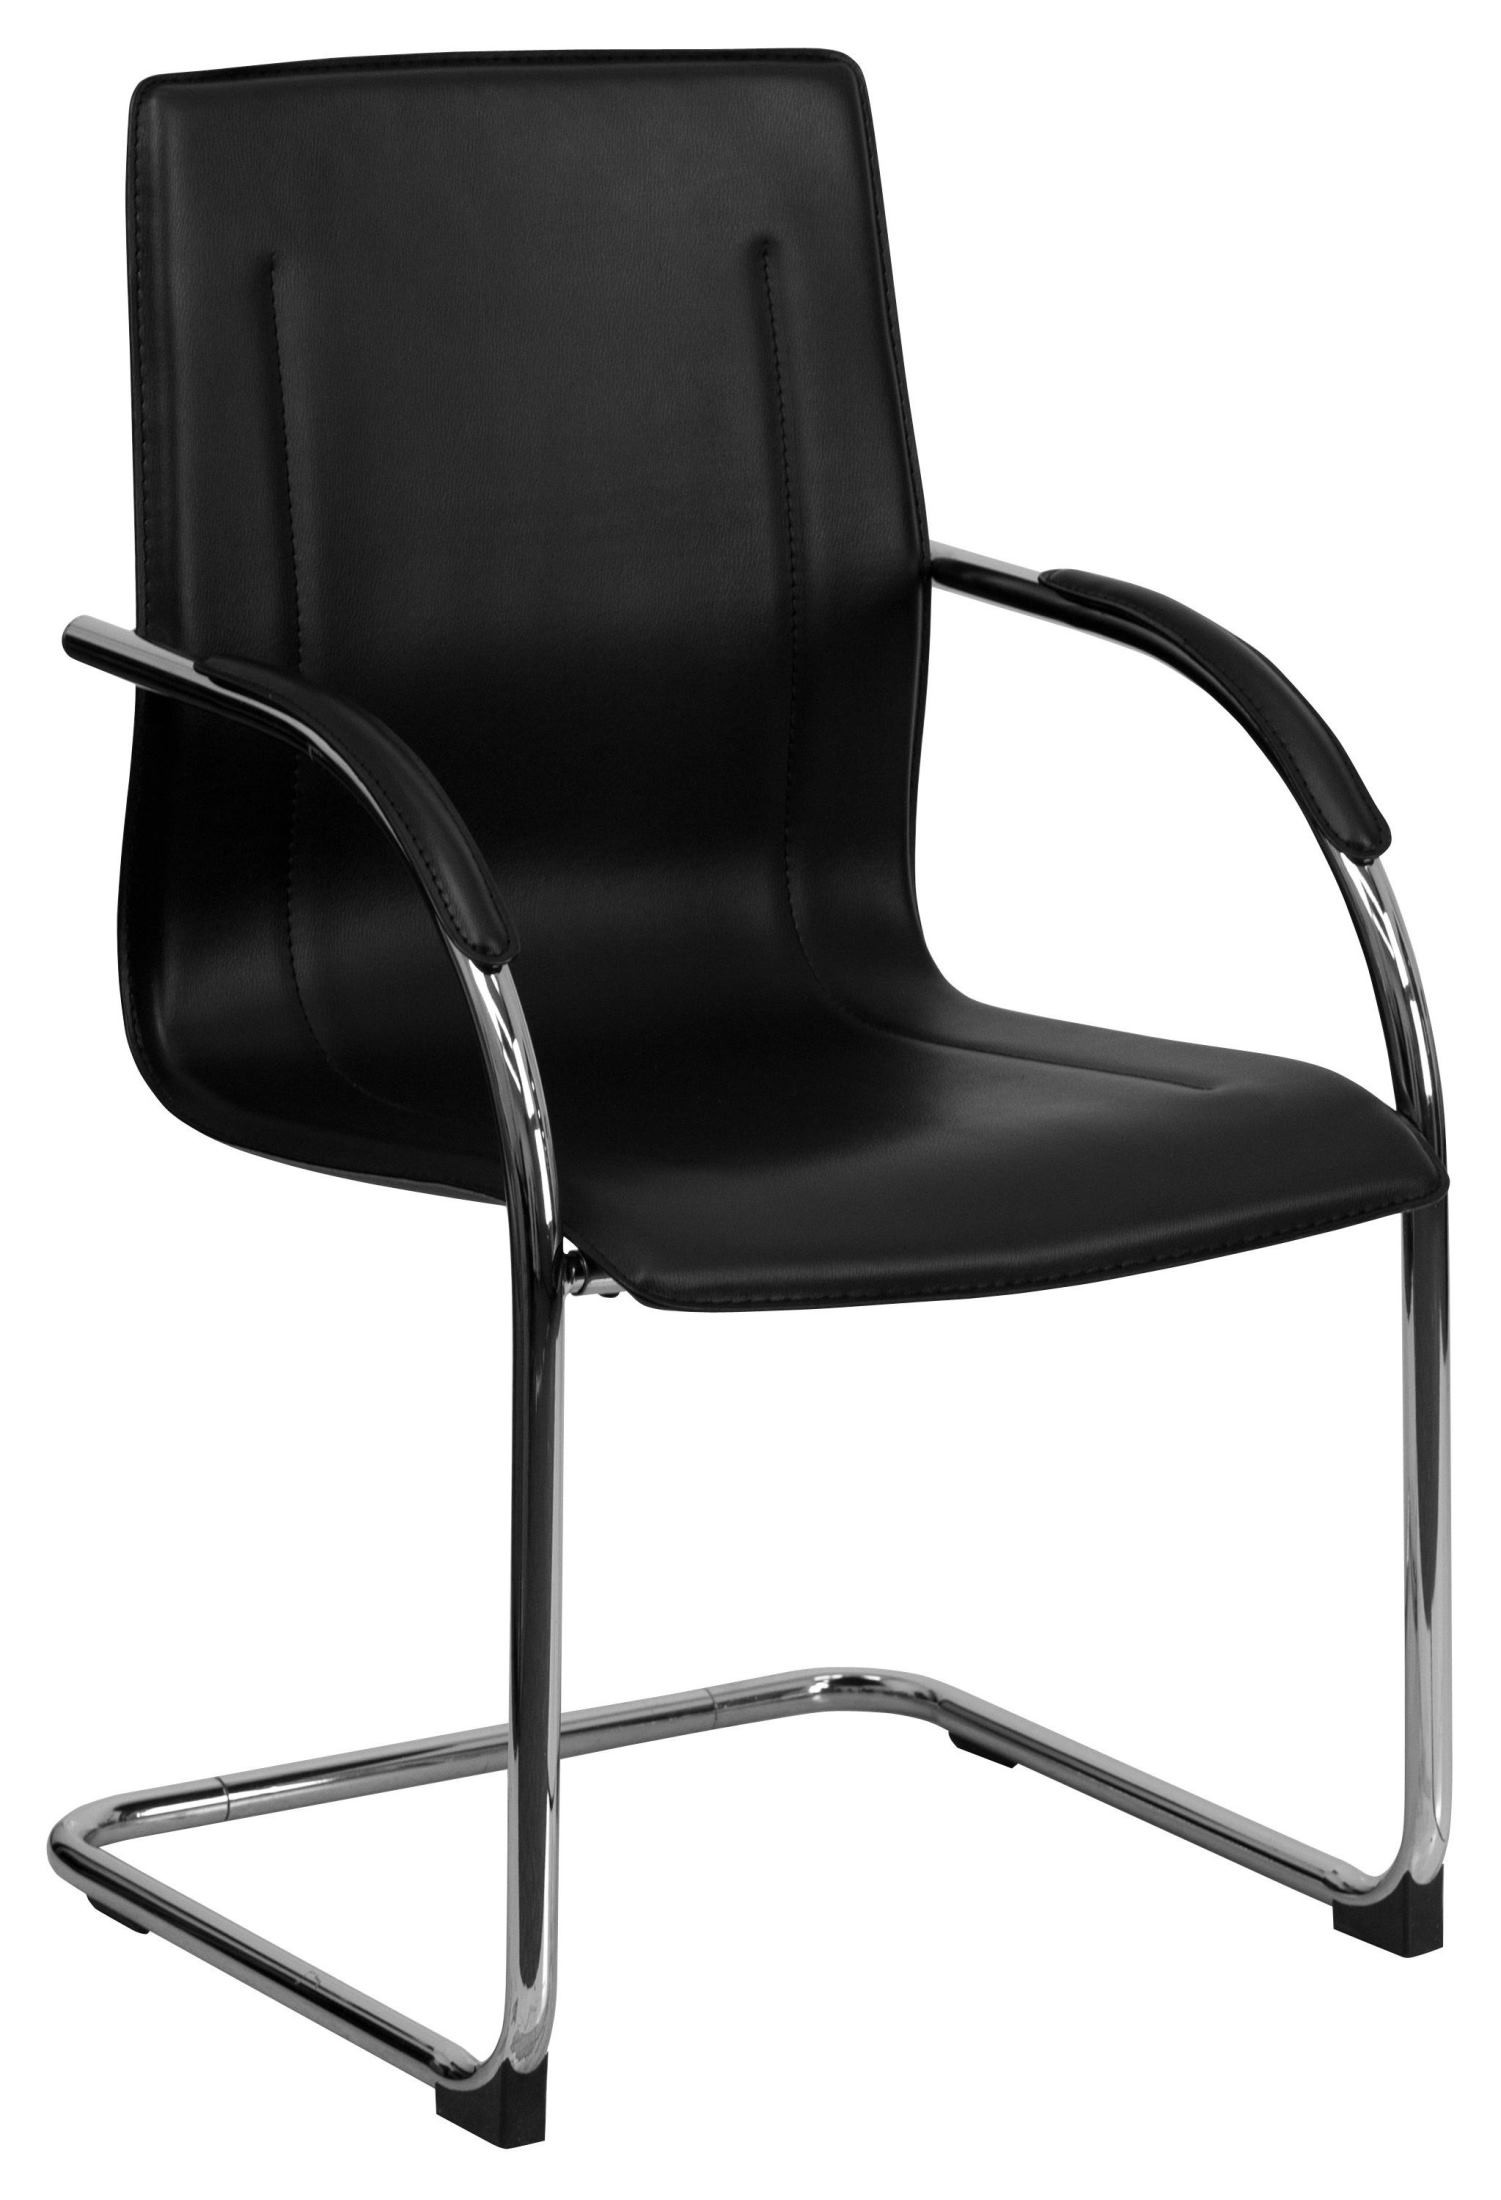 black side chair gym exercise system from renegade coleman furniture